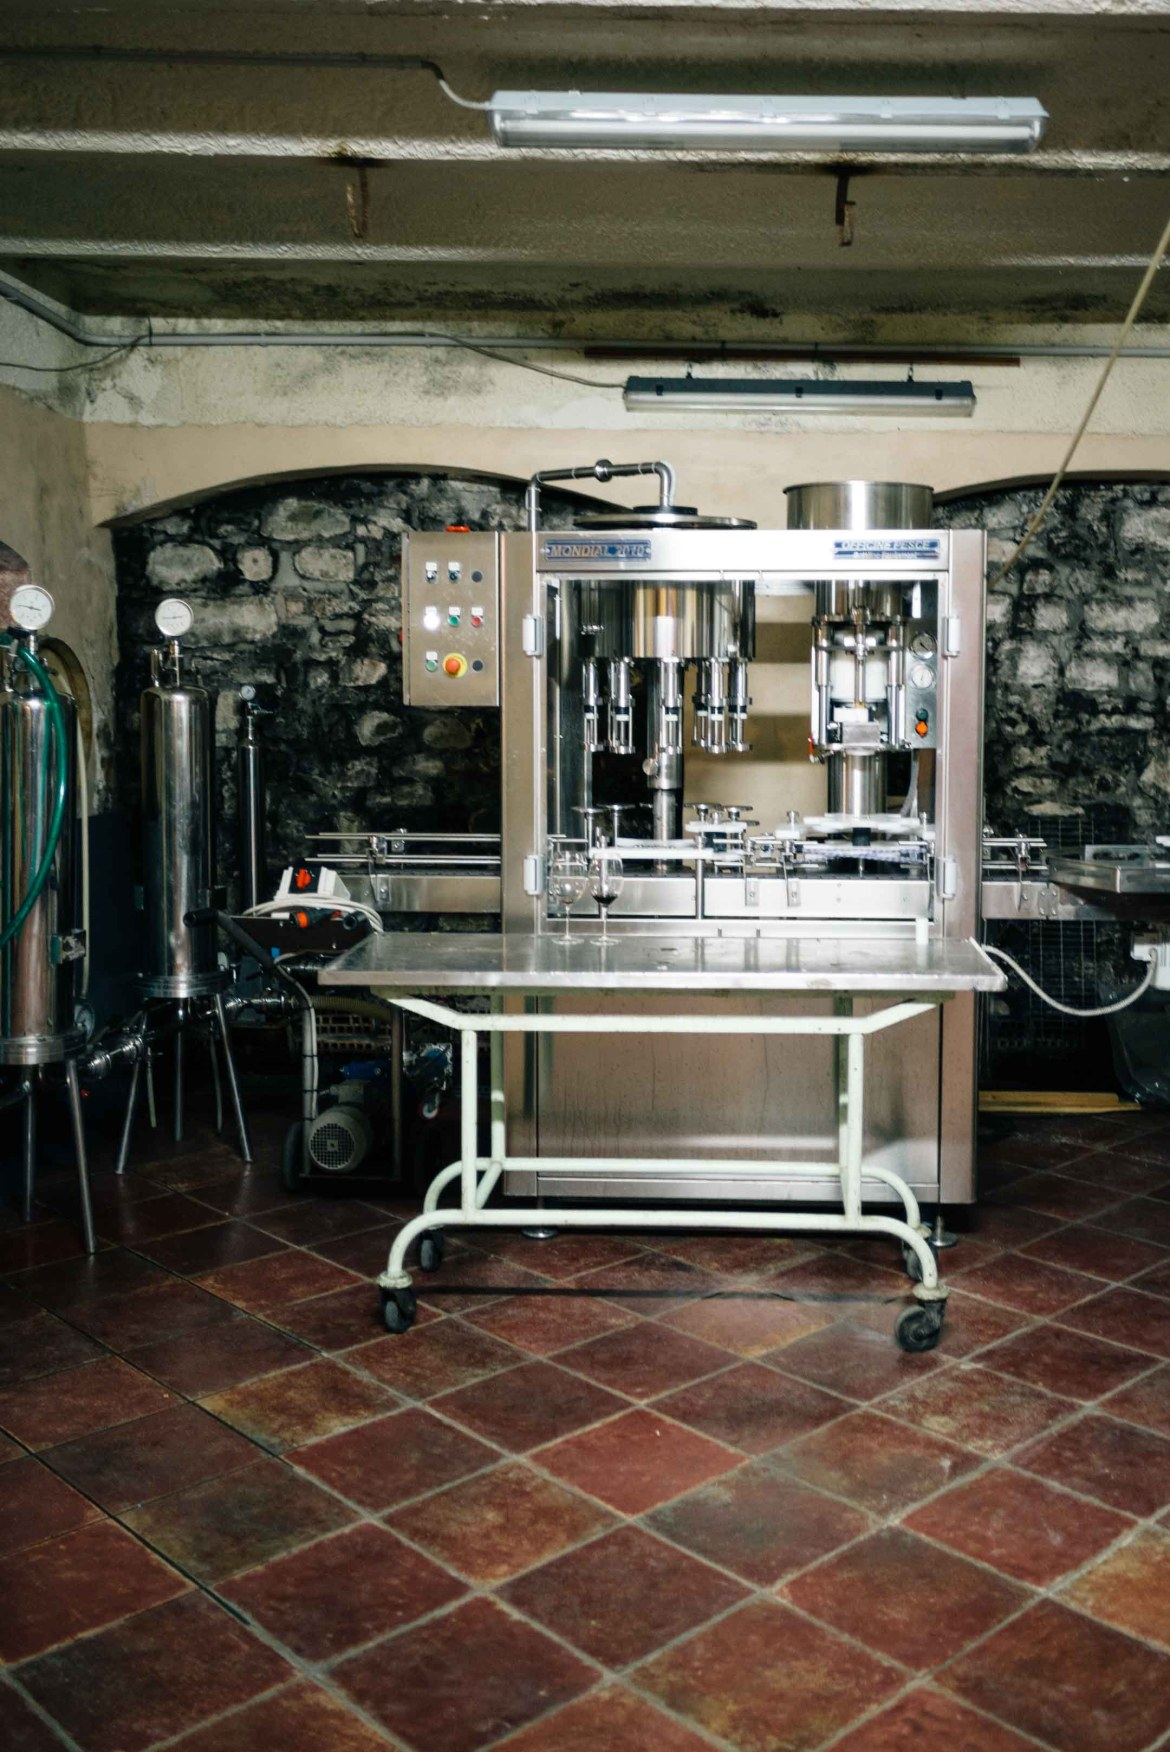 The Taste Edit, culinary photographers, recommends visiting this magical winery in northern Italy. Castello di Stefanago is near the town of Pavia in Lombardy. Winemaker and owner Giacomo Baruffaldi gives us a tour of the winery where they make Baruffaldi natural wines. The bottling machine